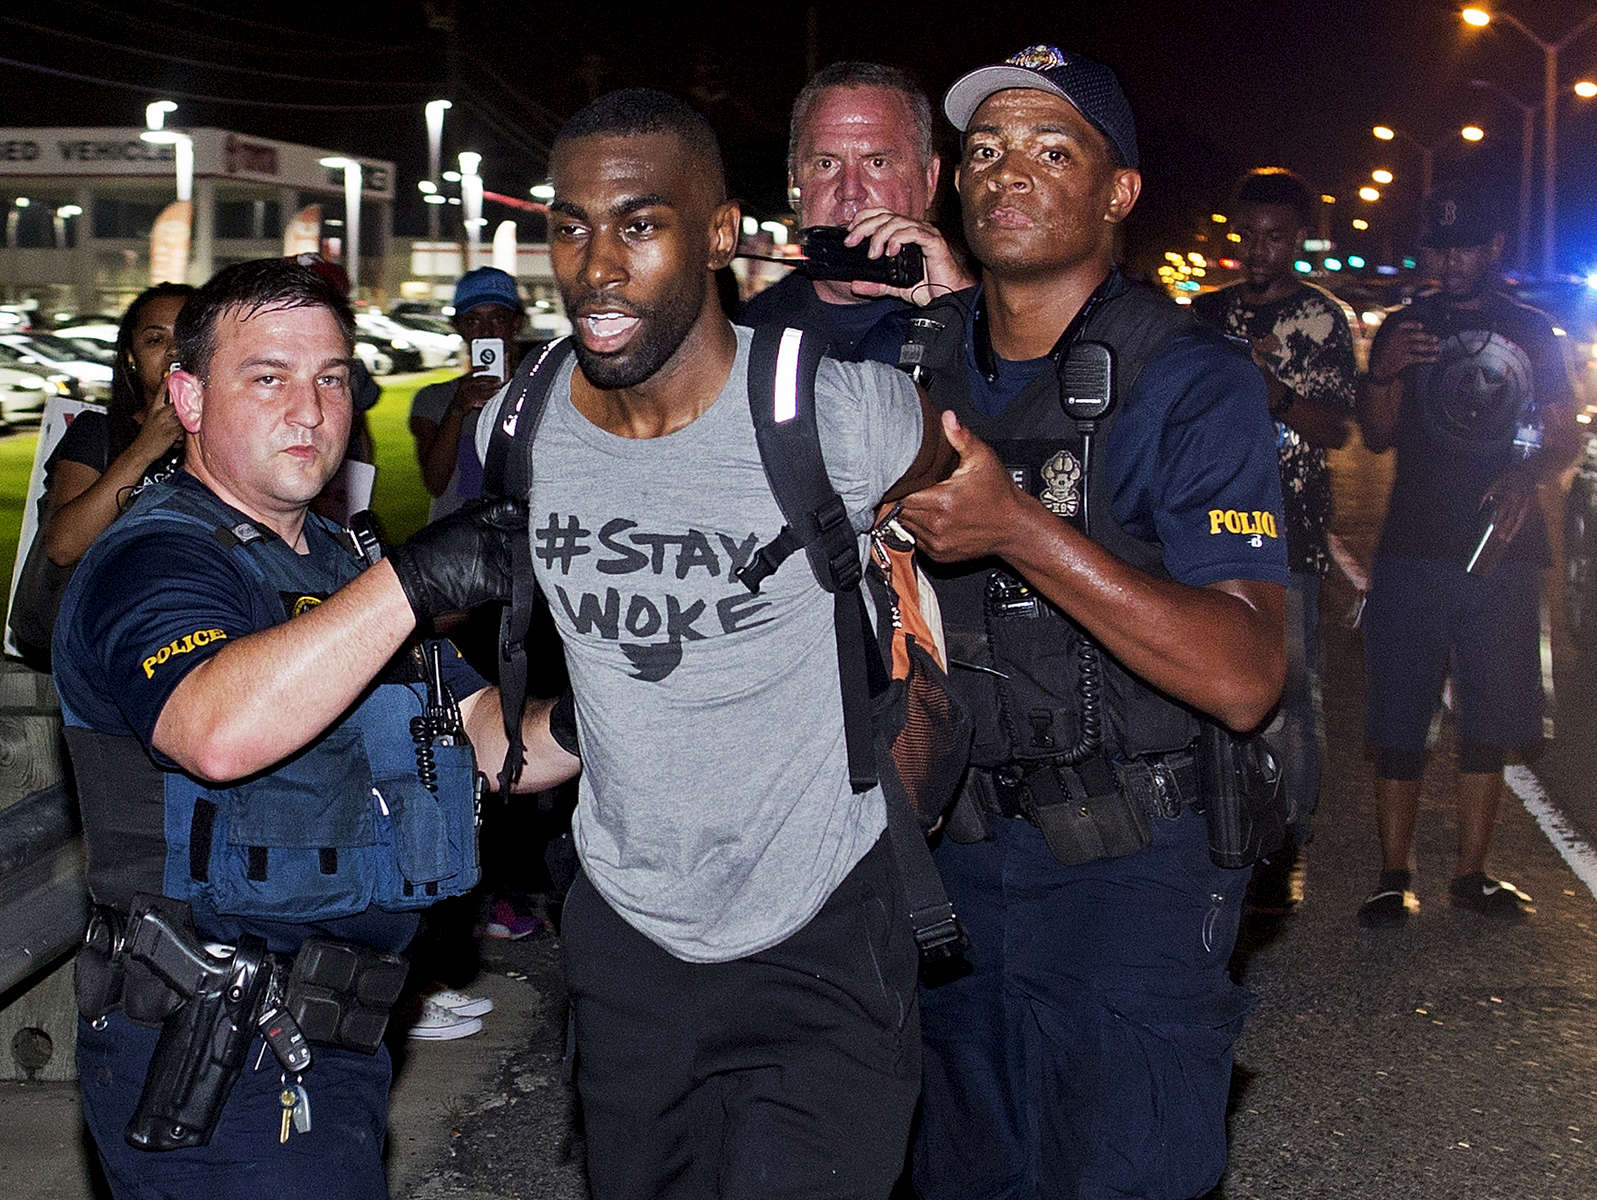 Baton Rouge police officers arrest a prominent Black Lives Matter activist, DeRay Mckesson, for allegedly obstructing a highway during a protest in support of justice for Alton Sterling in Baton Rouge, La. Saturday, July 9, 2016. Video shot by Mckesson in the moments before his arrest show him walking alongside Airline Highway on his way back to the main area where the protests were going on when he was arrested. (AP Photo/Max Becherer)